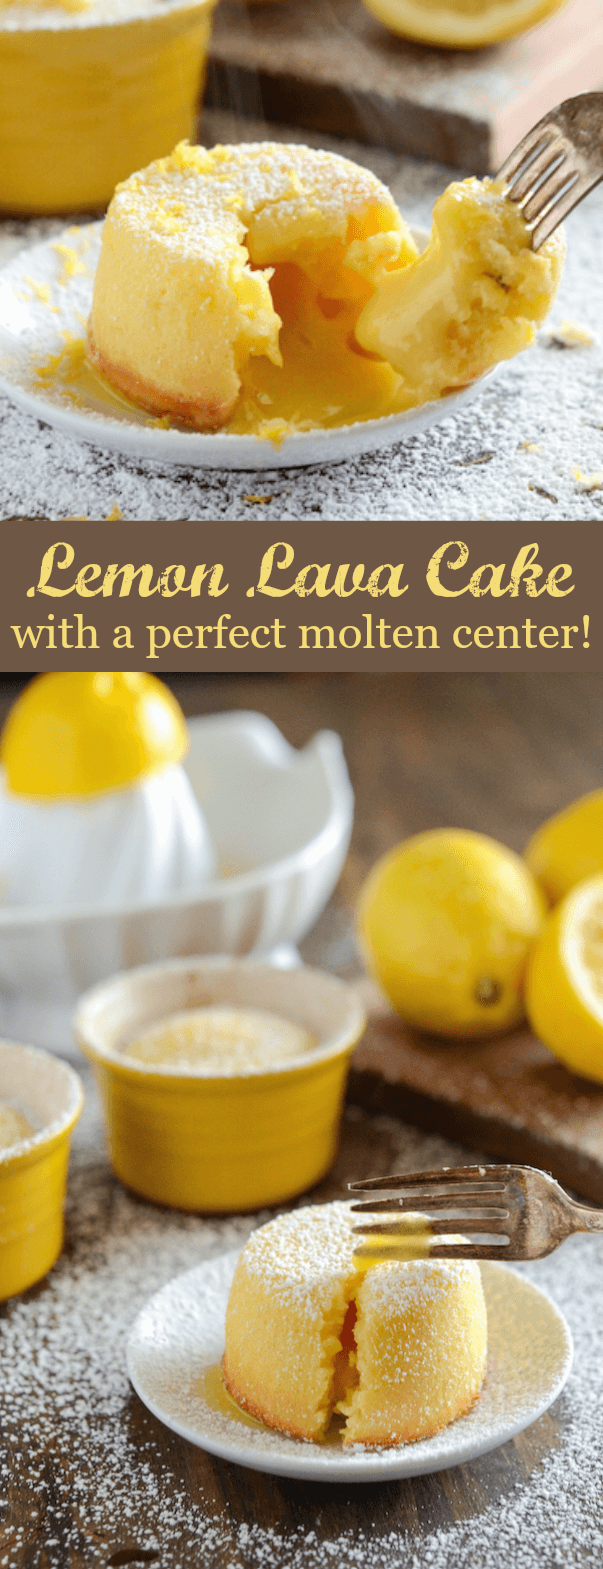 A Collage of Two Images of Lemon Lava Cake with the Molten Center Shown Off